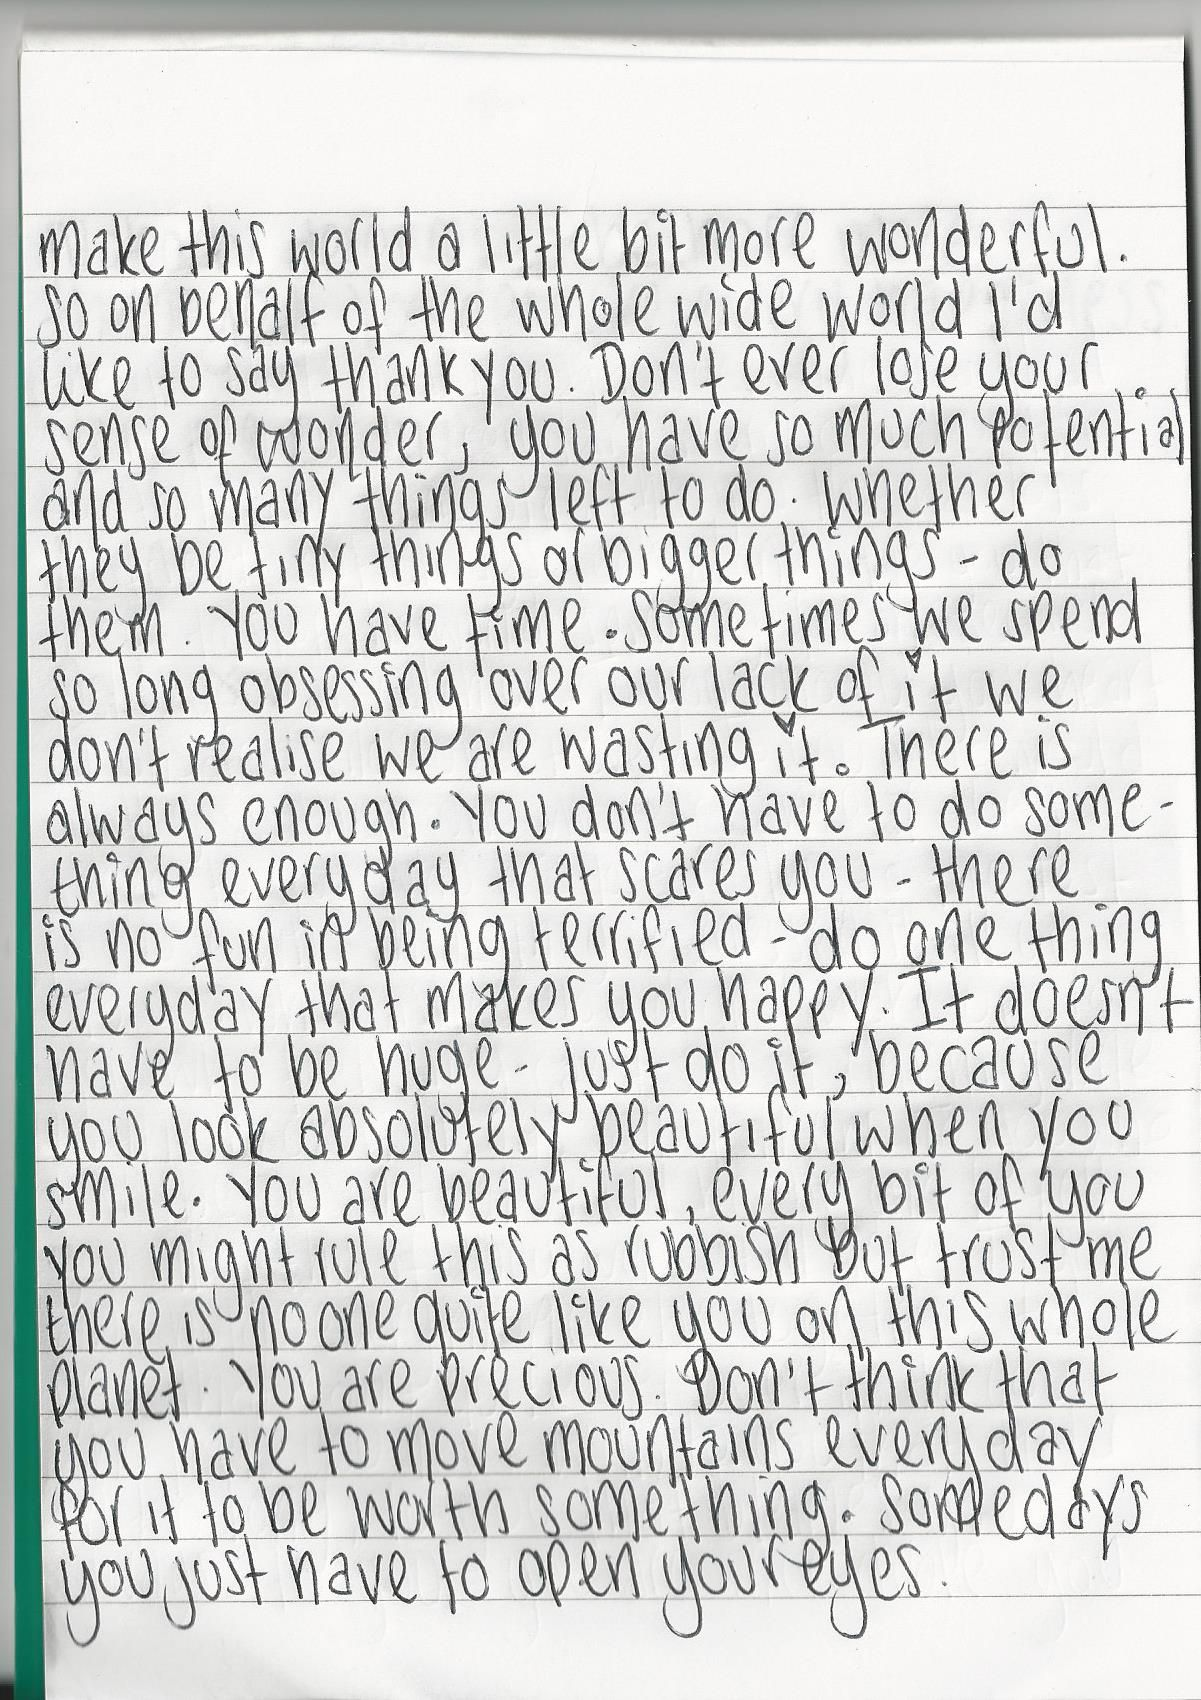 Pin By Miemie Campher On New Love Suprise For Boyfriend Open When Letters Open Letter